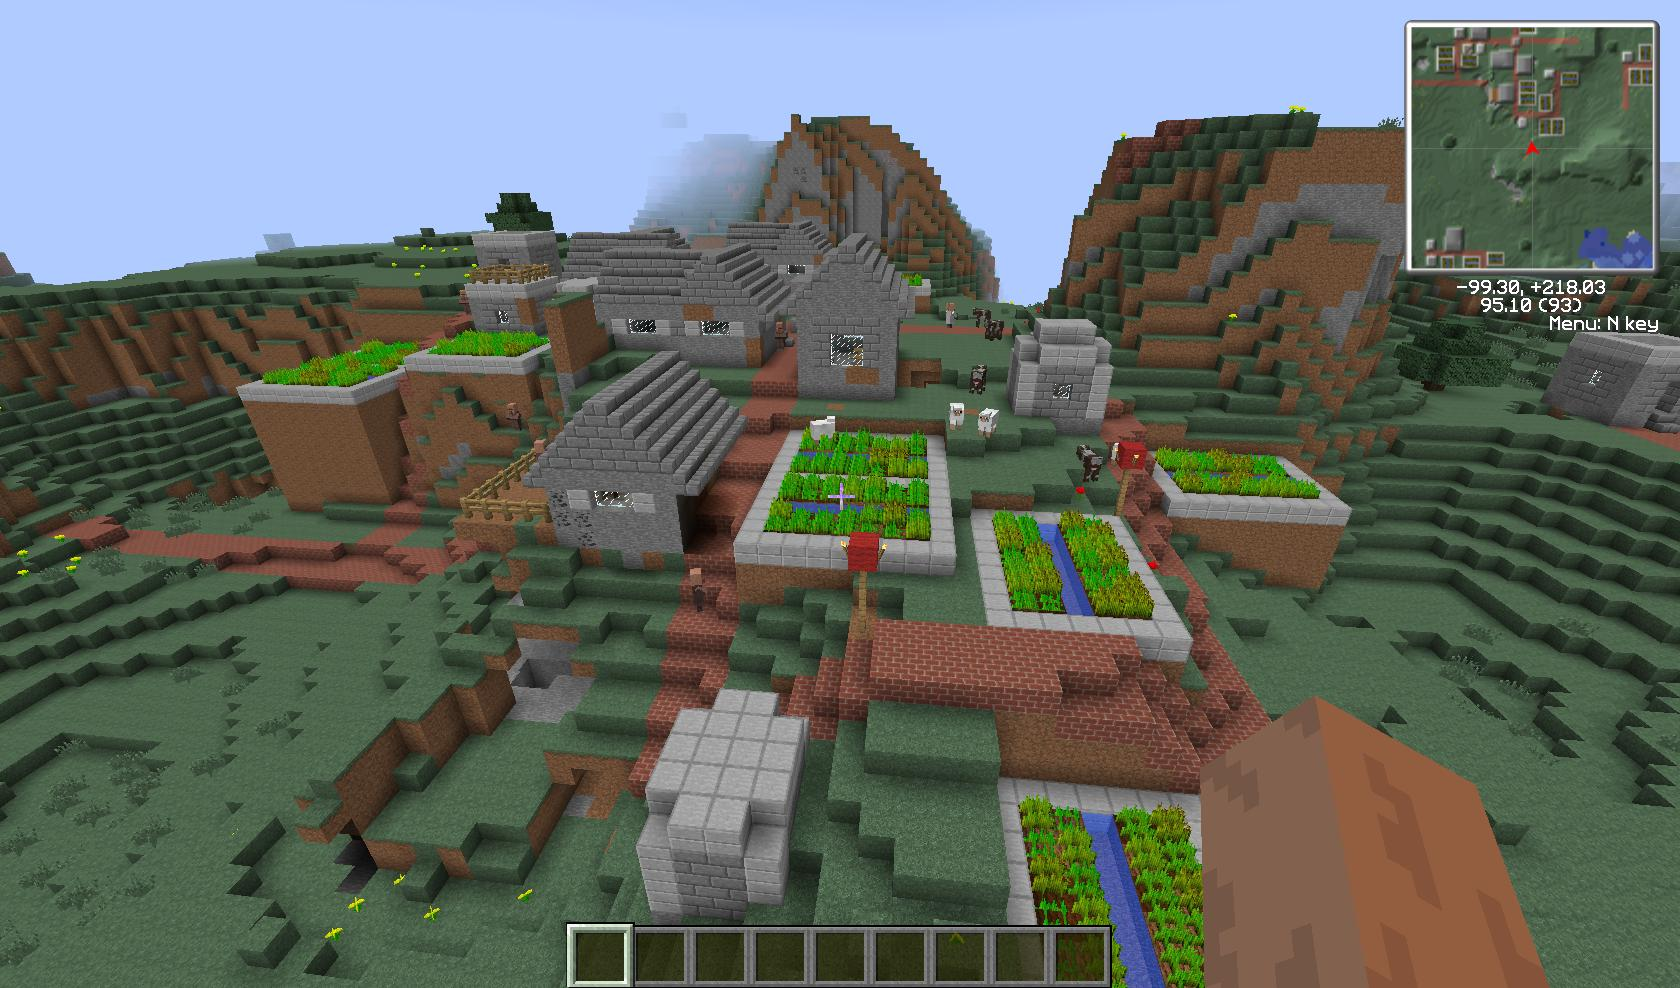 http://minecraft-forum.net/wp-content/uploads/2013/03/81c52__More-Village-Biomes-Mod-4.jpg